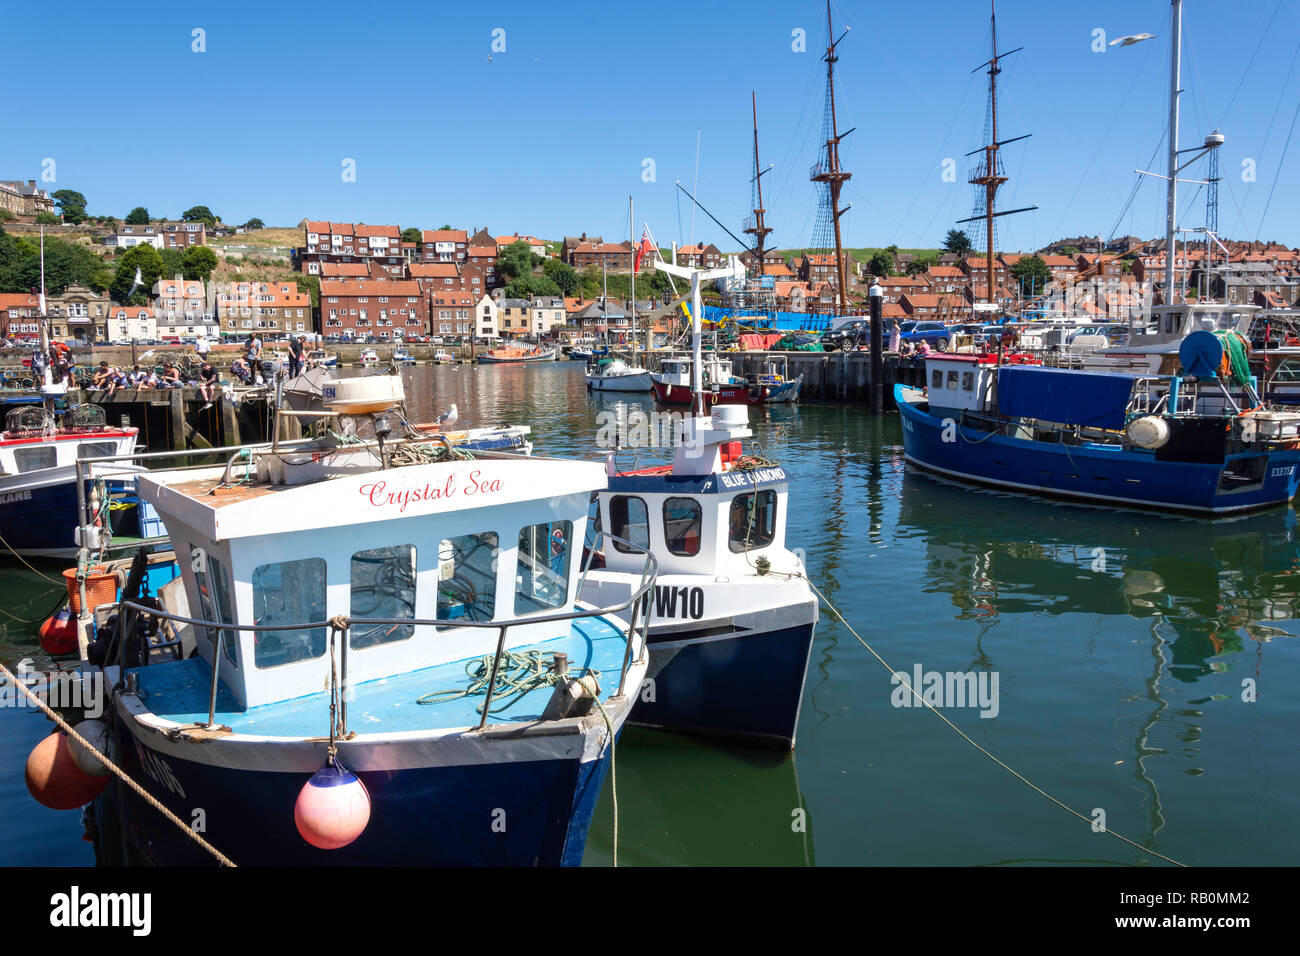 Harbour jetty, Whitby, North Yorkshire, England, United Kingdom - Stock Image